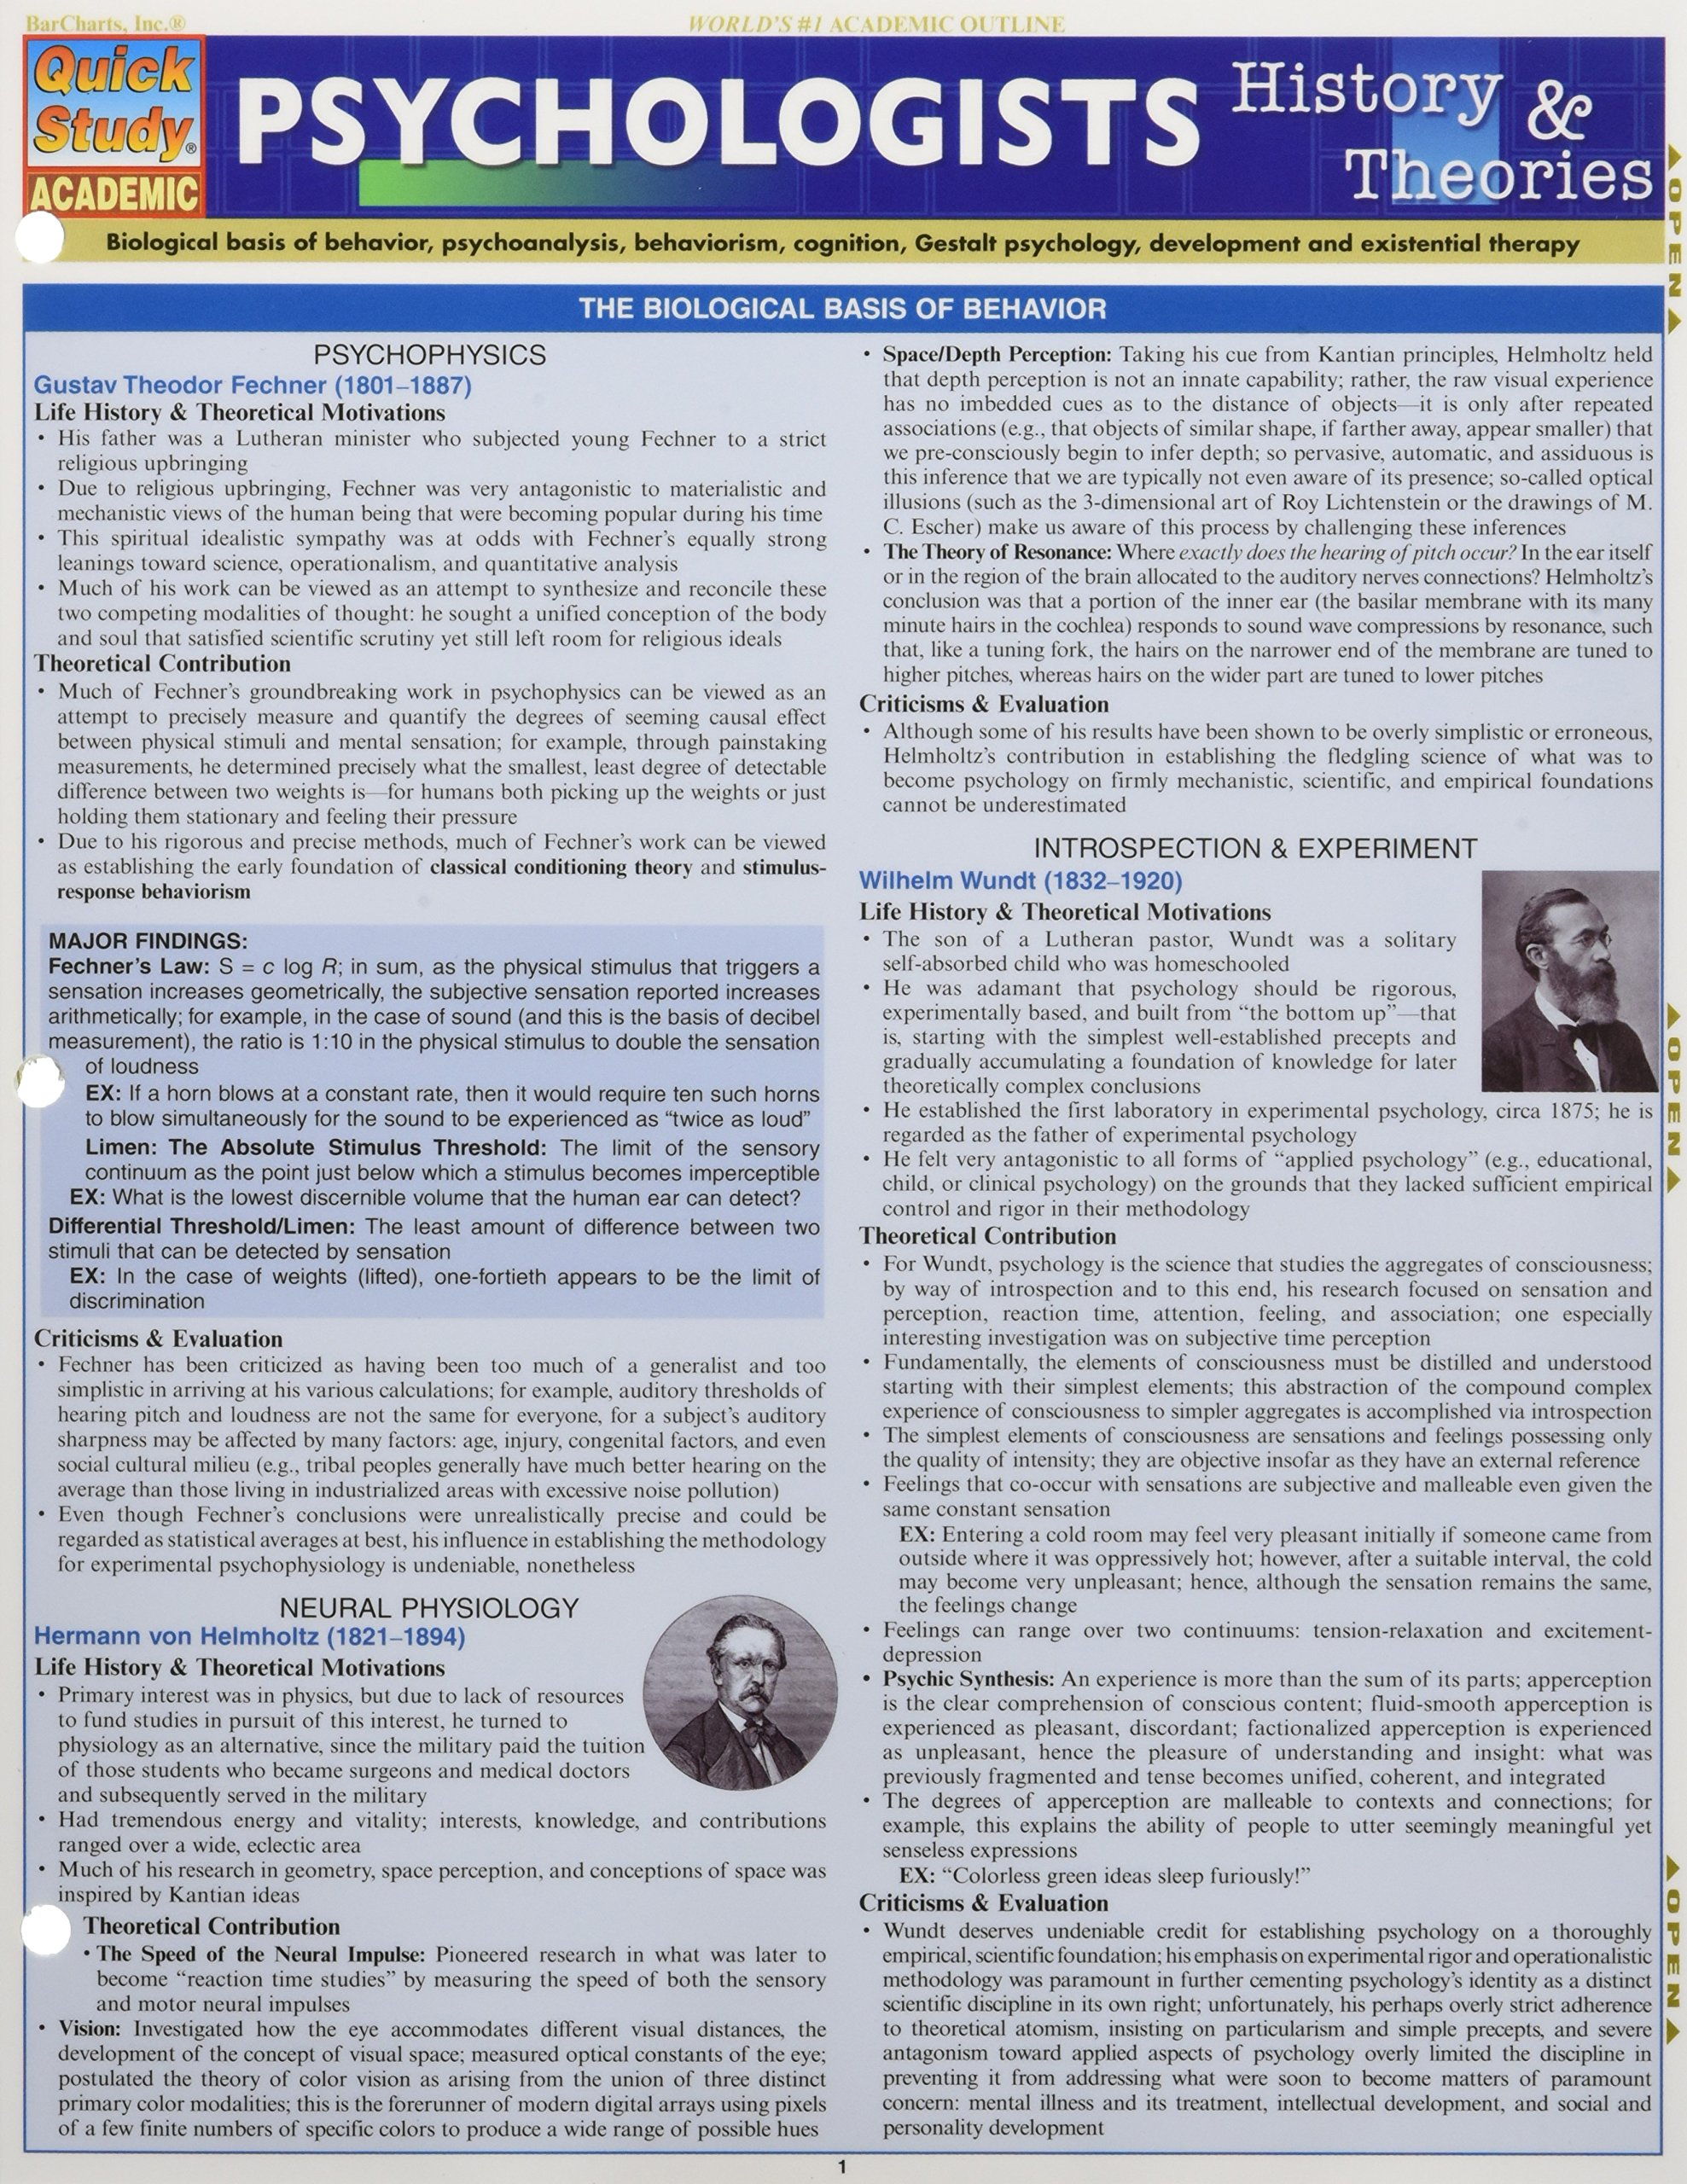 Psychologists: History & Theories ebook